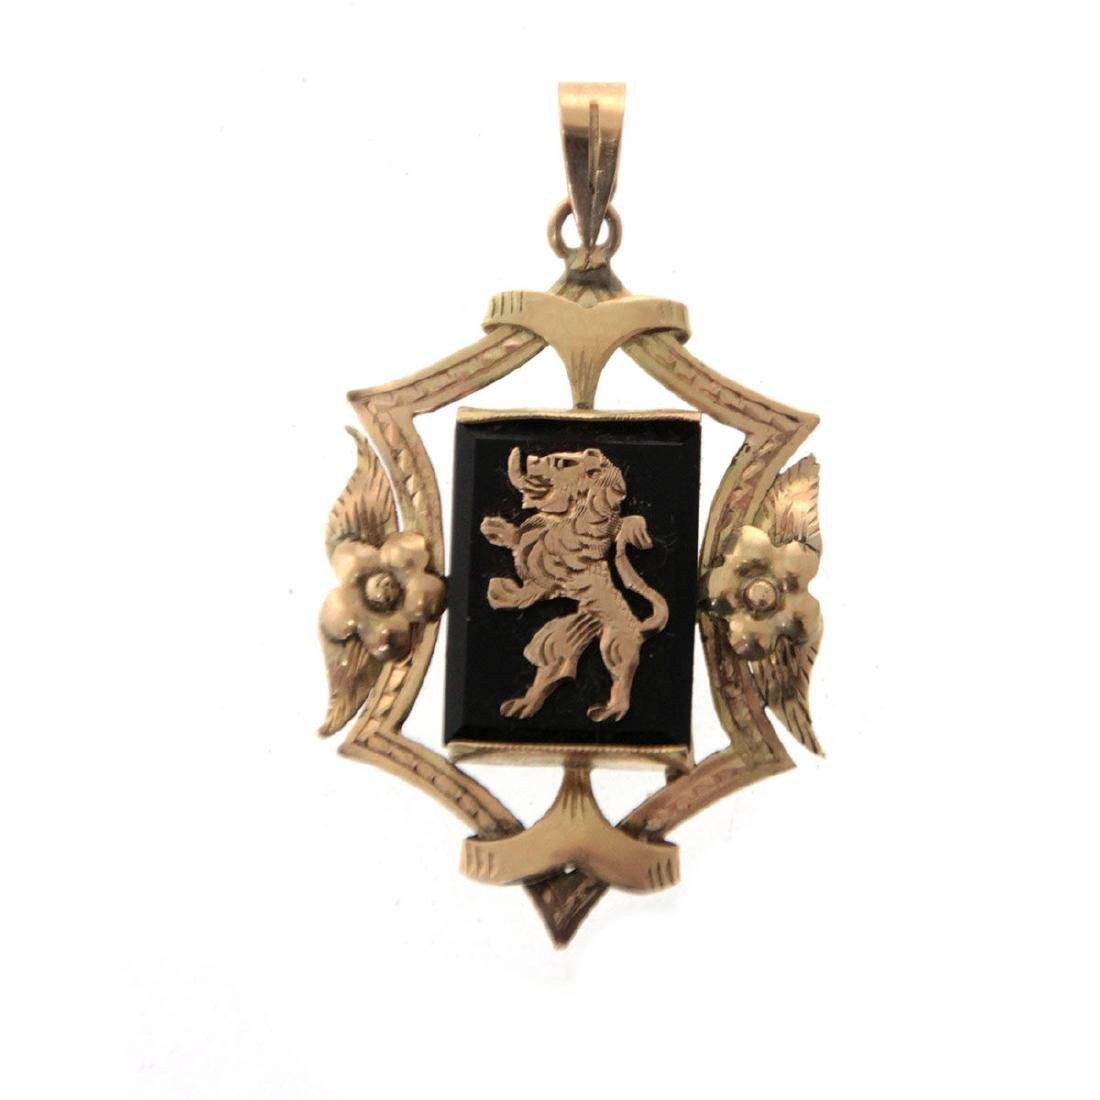 14k Yellow Gold and Onyx Pendant.